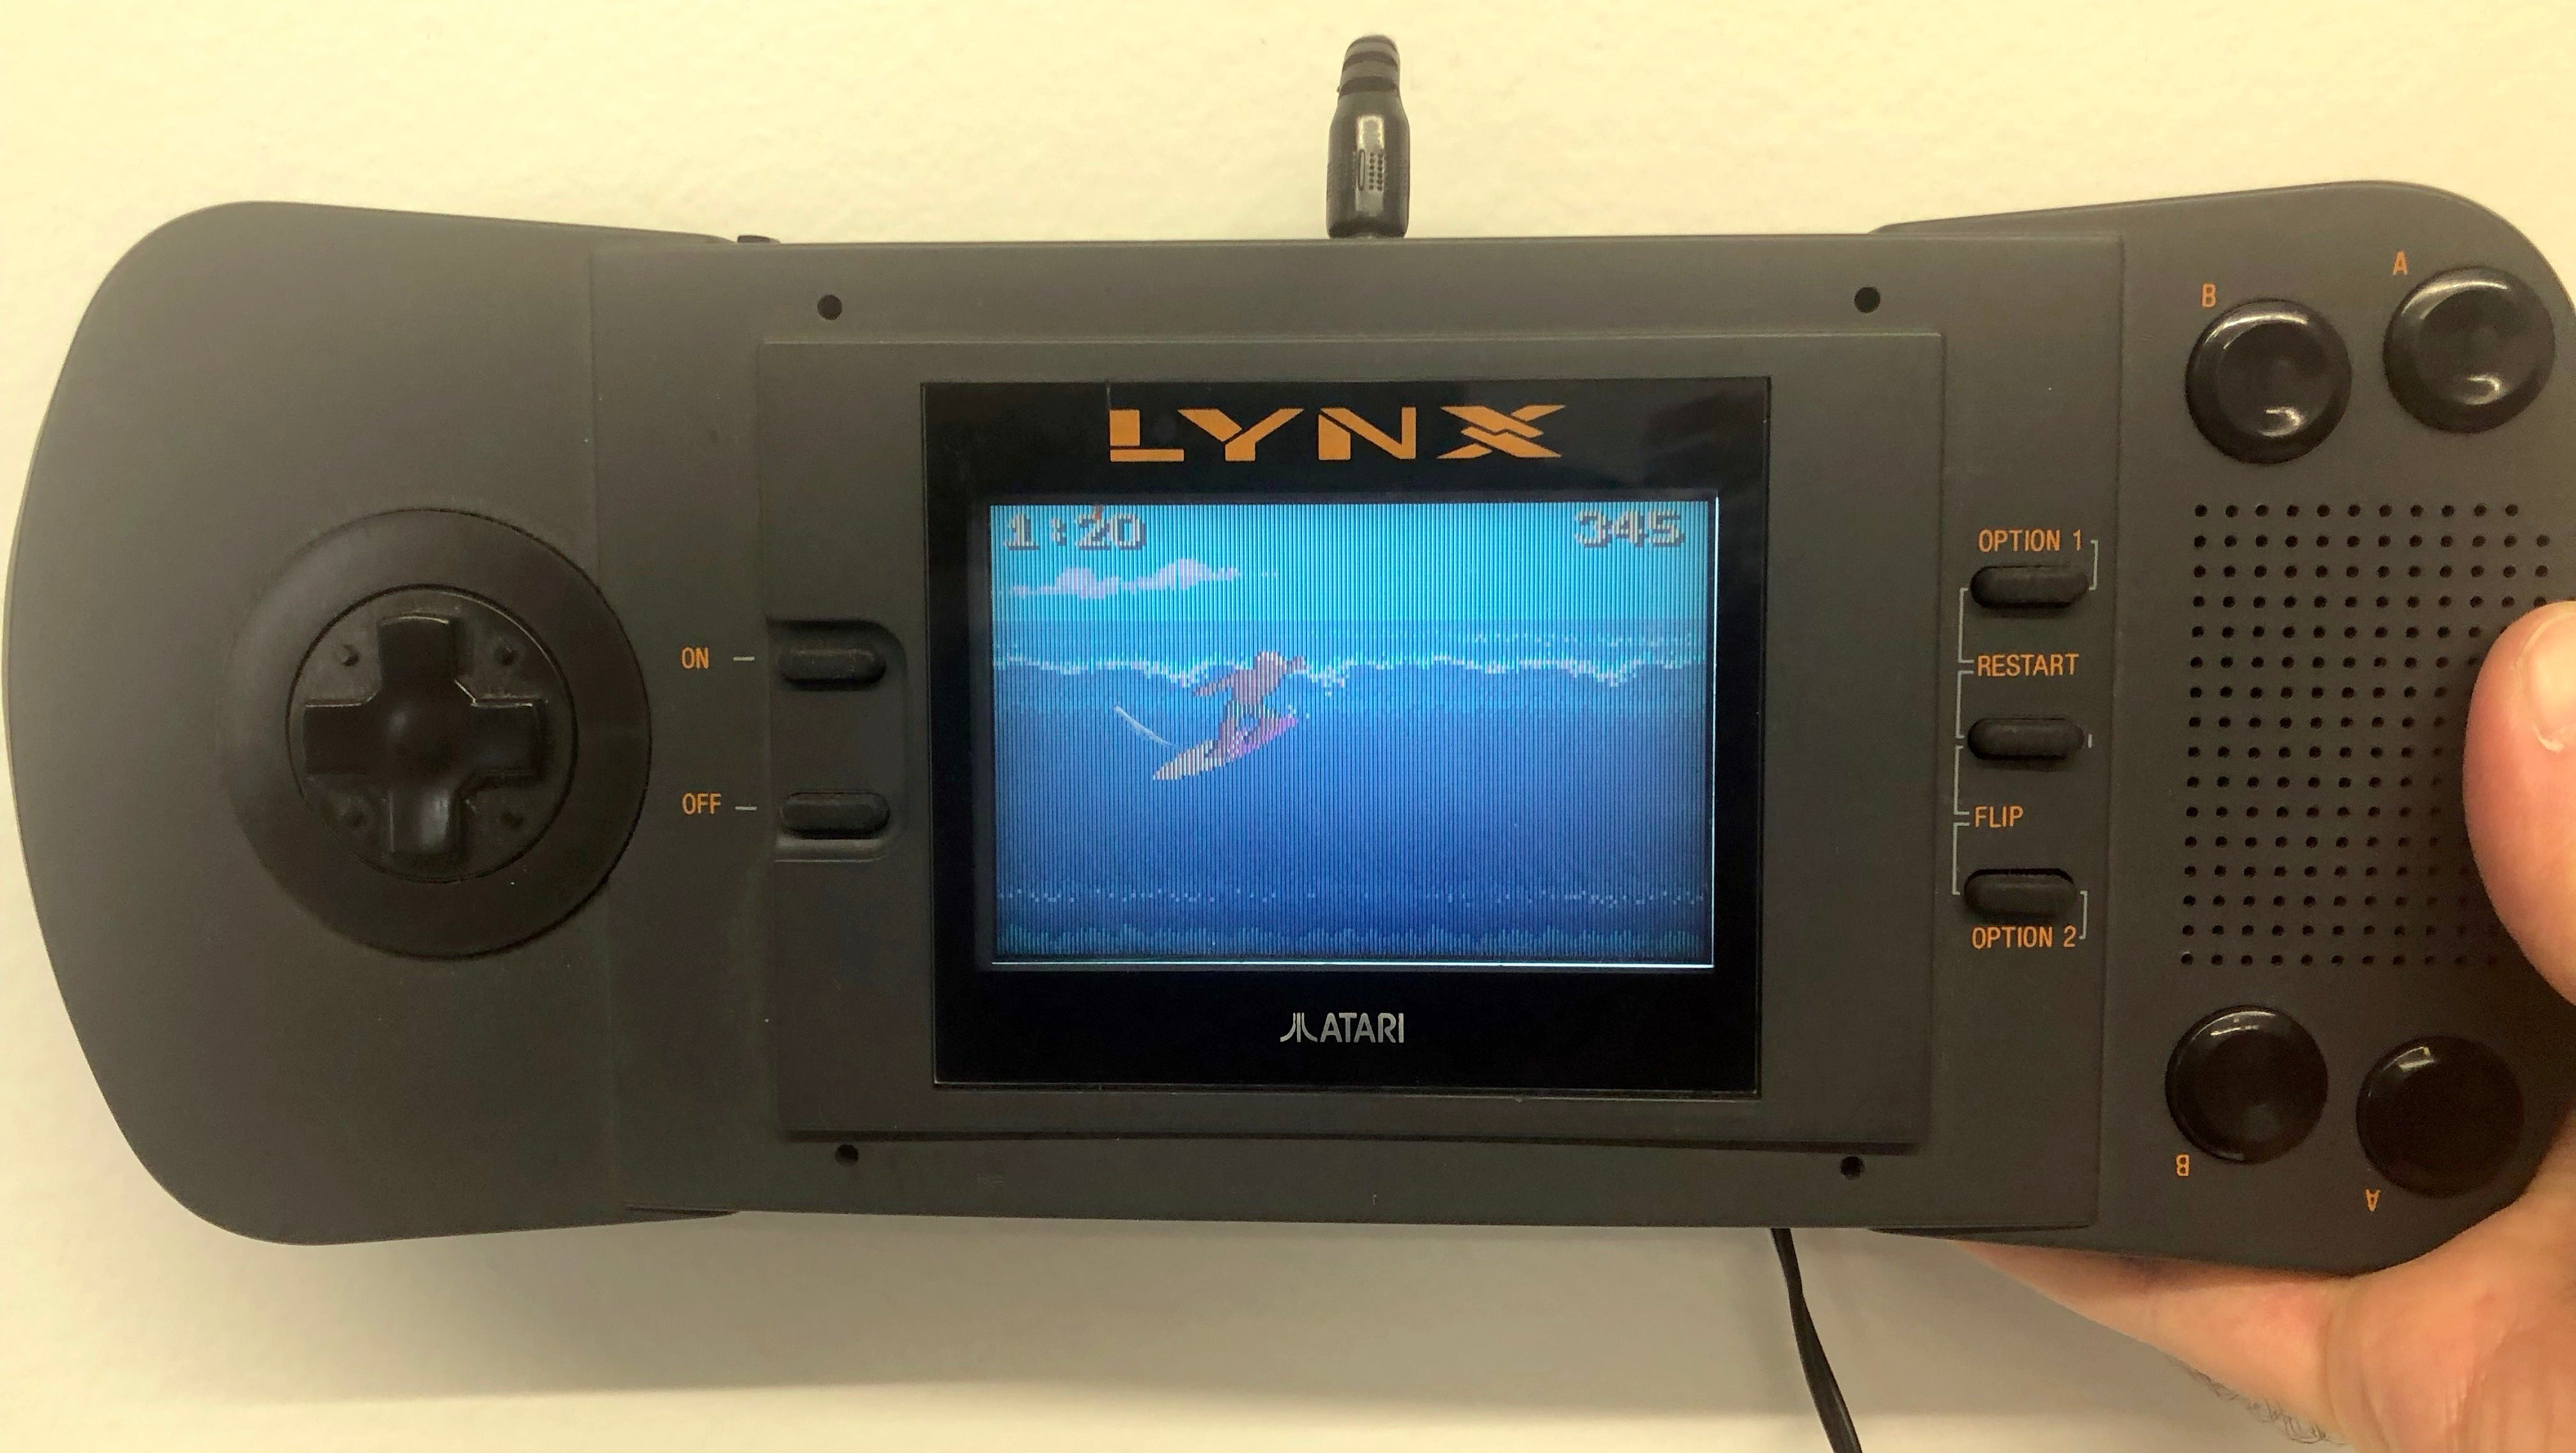 Decades After I Last Turned It On, My Atari Lynx Still Works